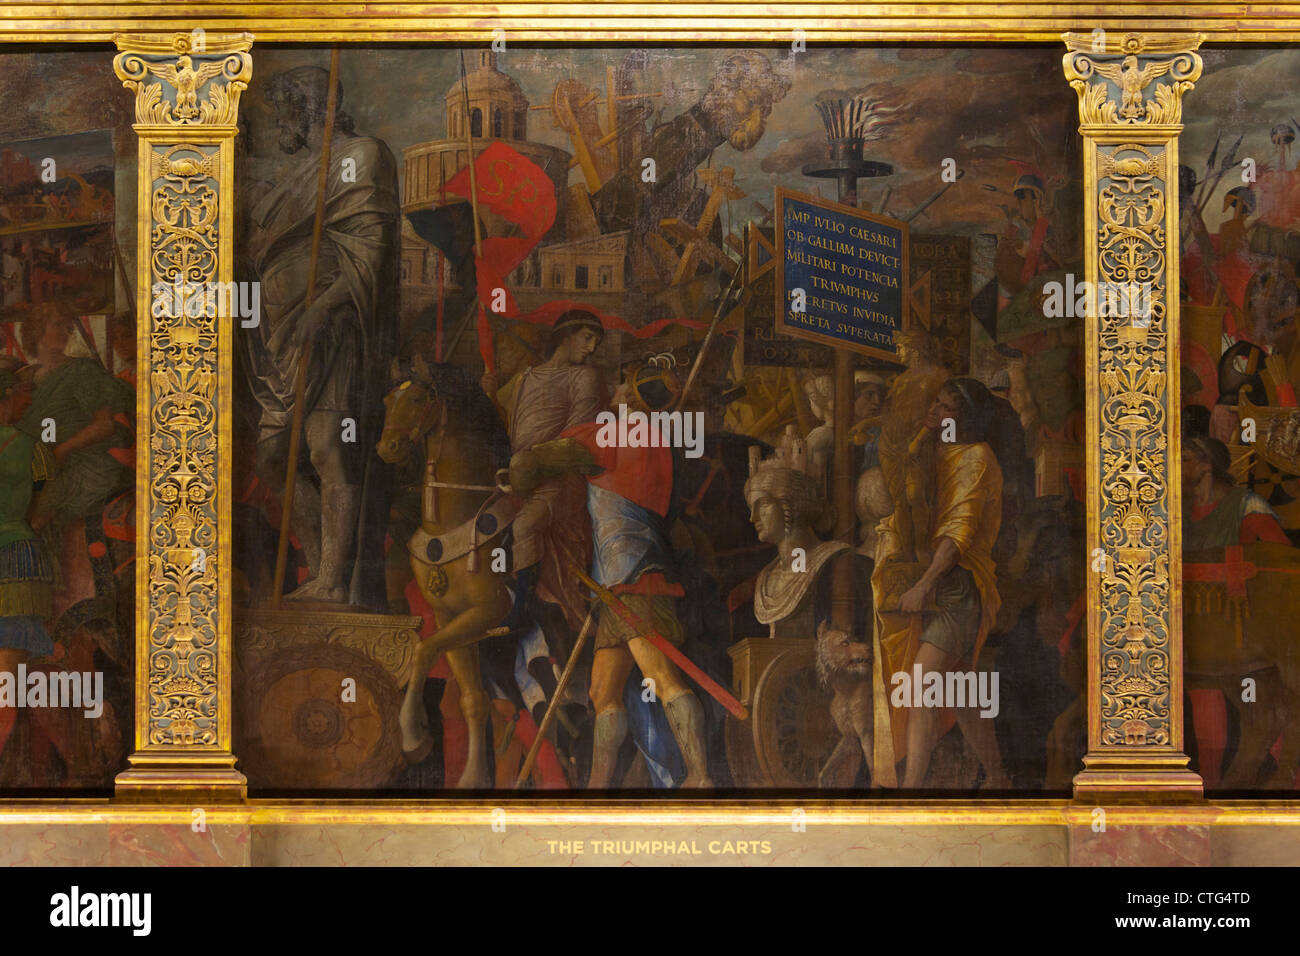 Triumphal Carts, from the Triumphs of Caesar, by Andrea Mantegna, - Stock Image